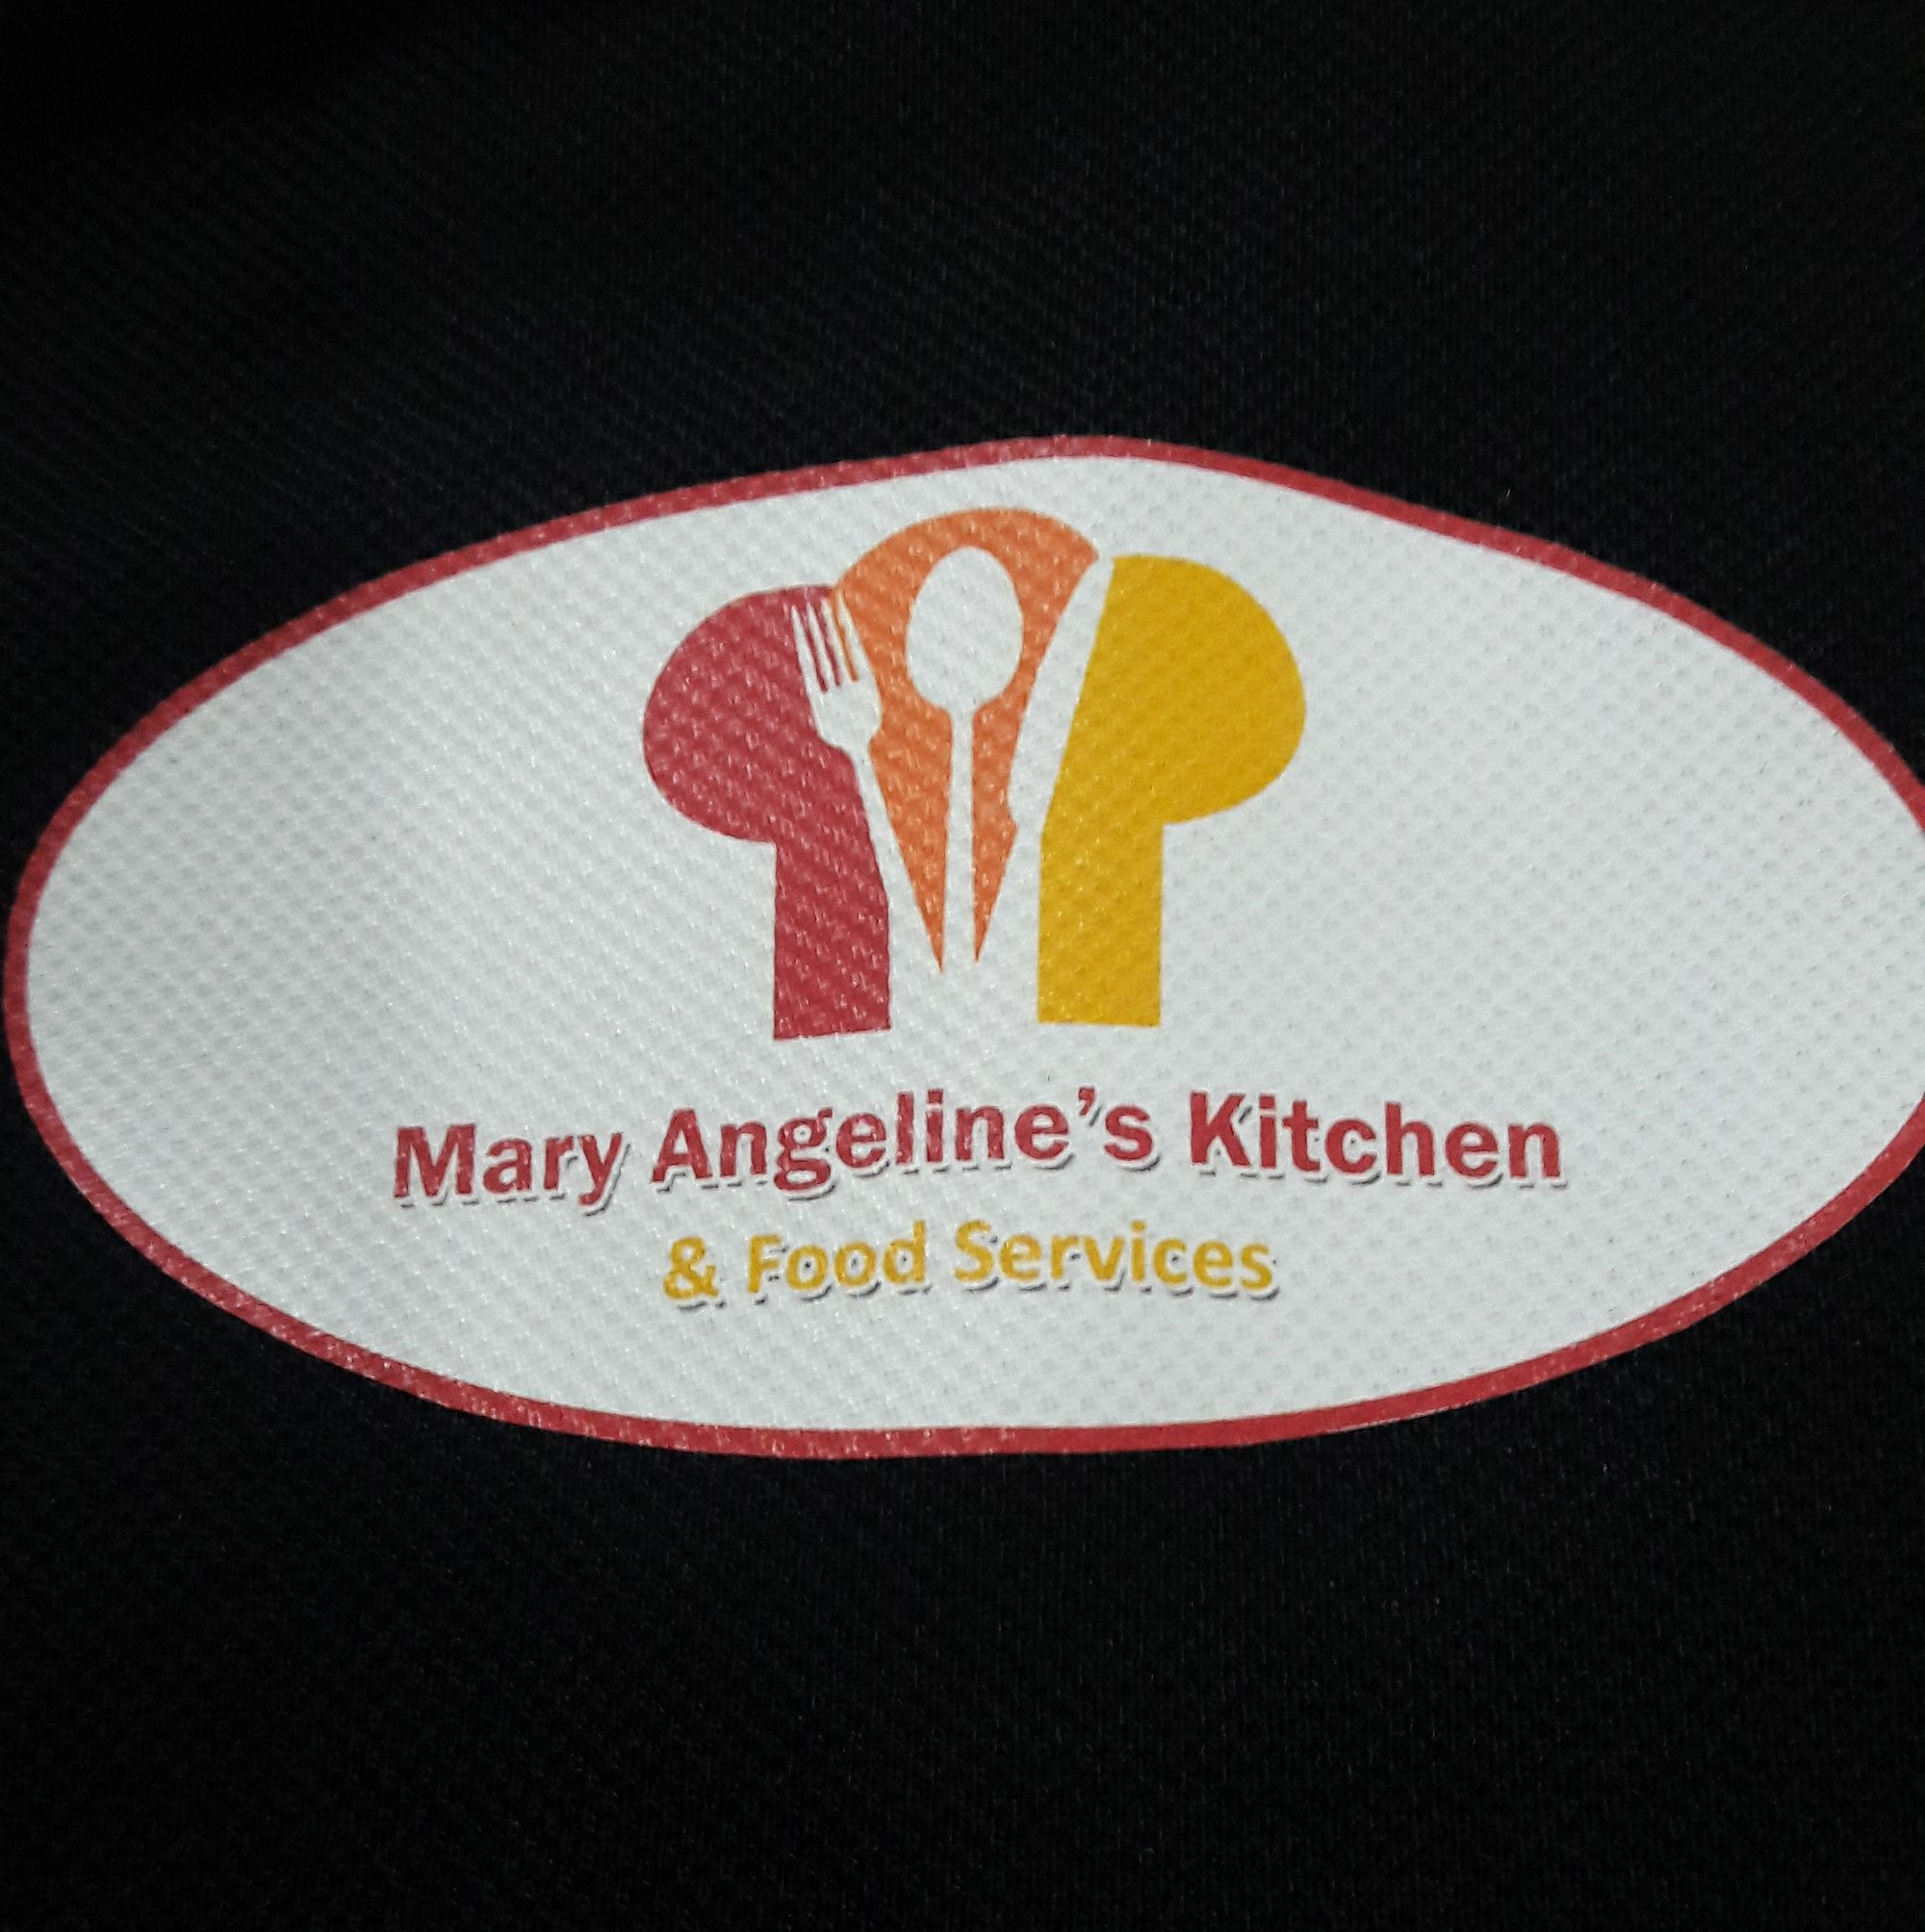 Mary Angeline's Kitchen